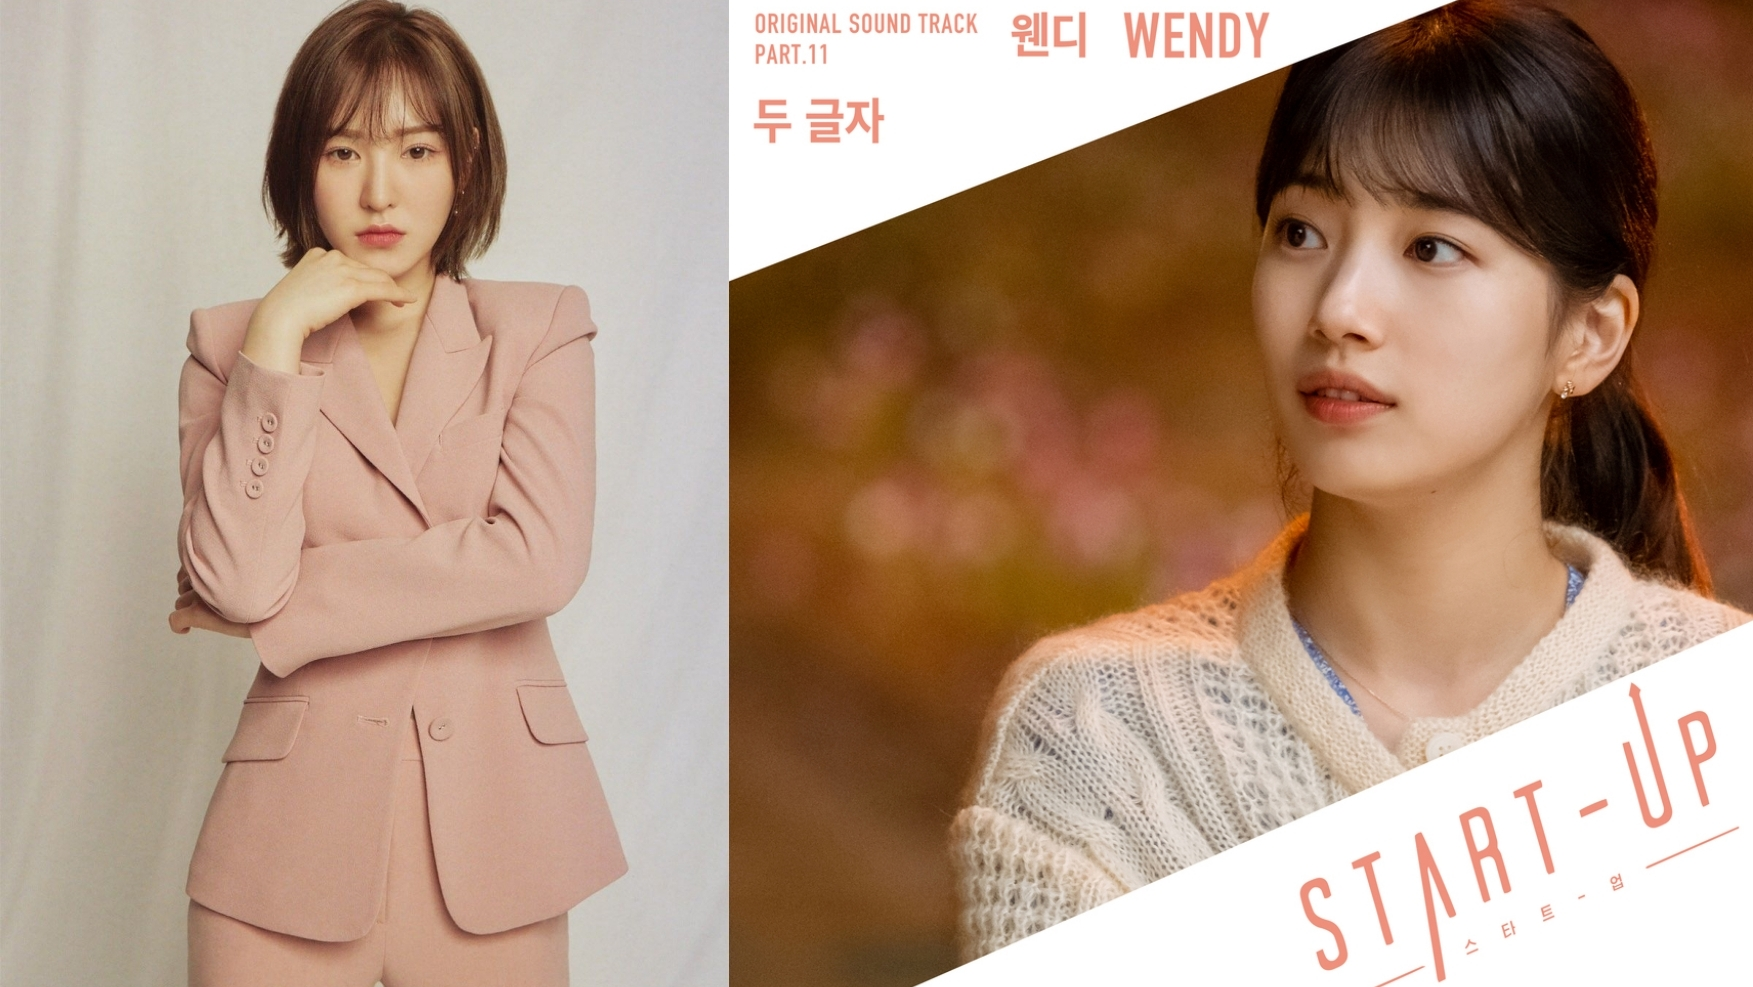 Red Velvet's Wendy Sings 'Two Words' as OST for Drama 'Start-Up'